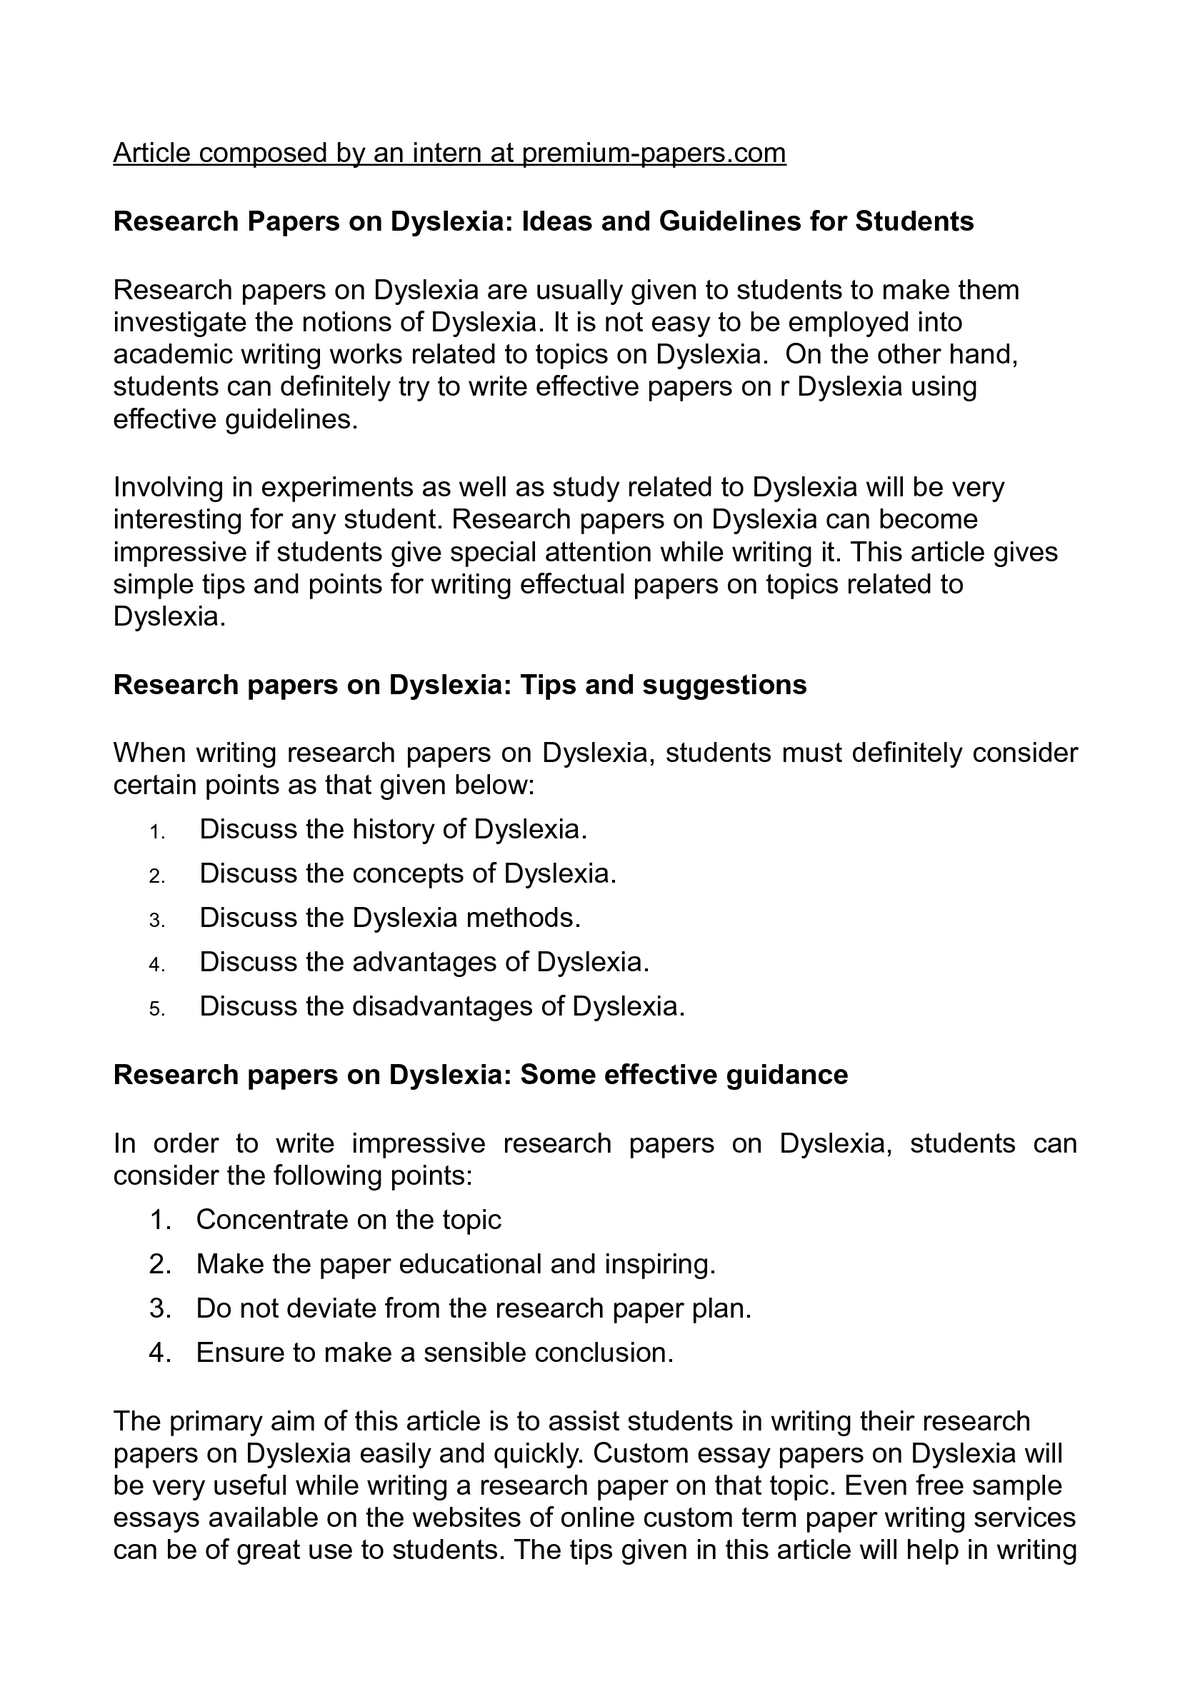 calamo   research papers on dyslexia ideas and guidelines for students